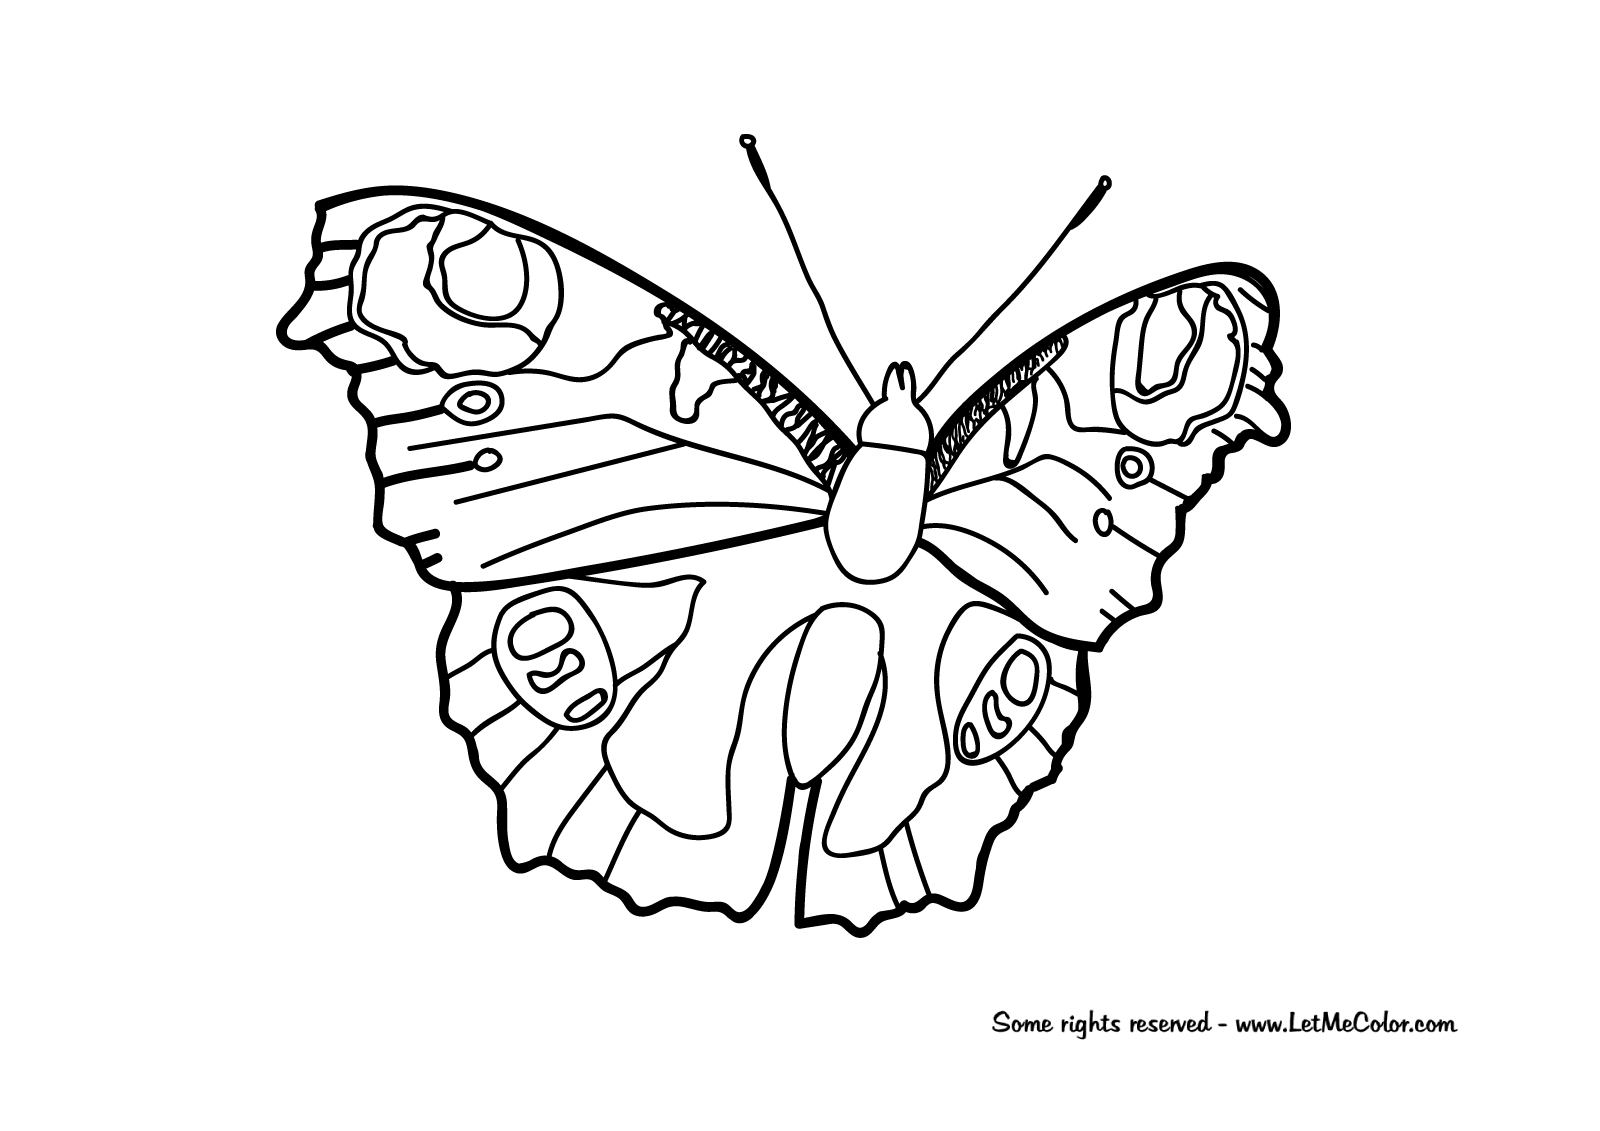 Letmecolor Page 2 Free Amp Printable Coloring Pages Made